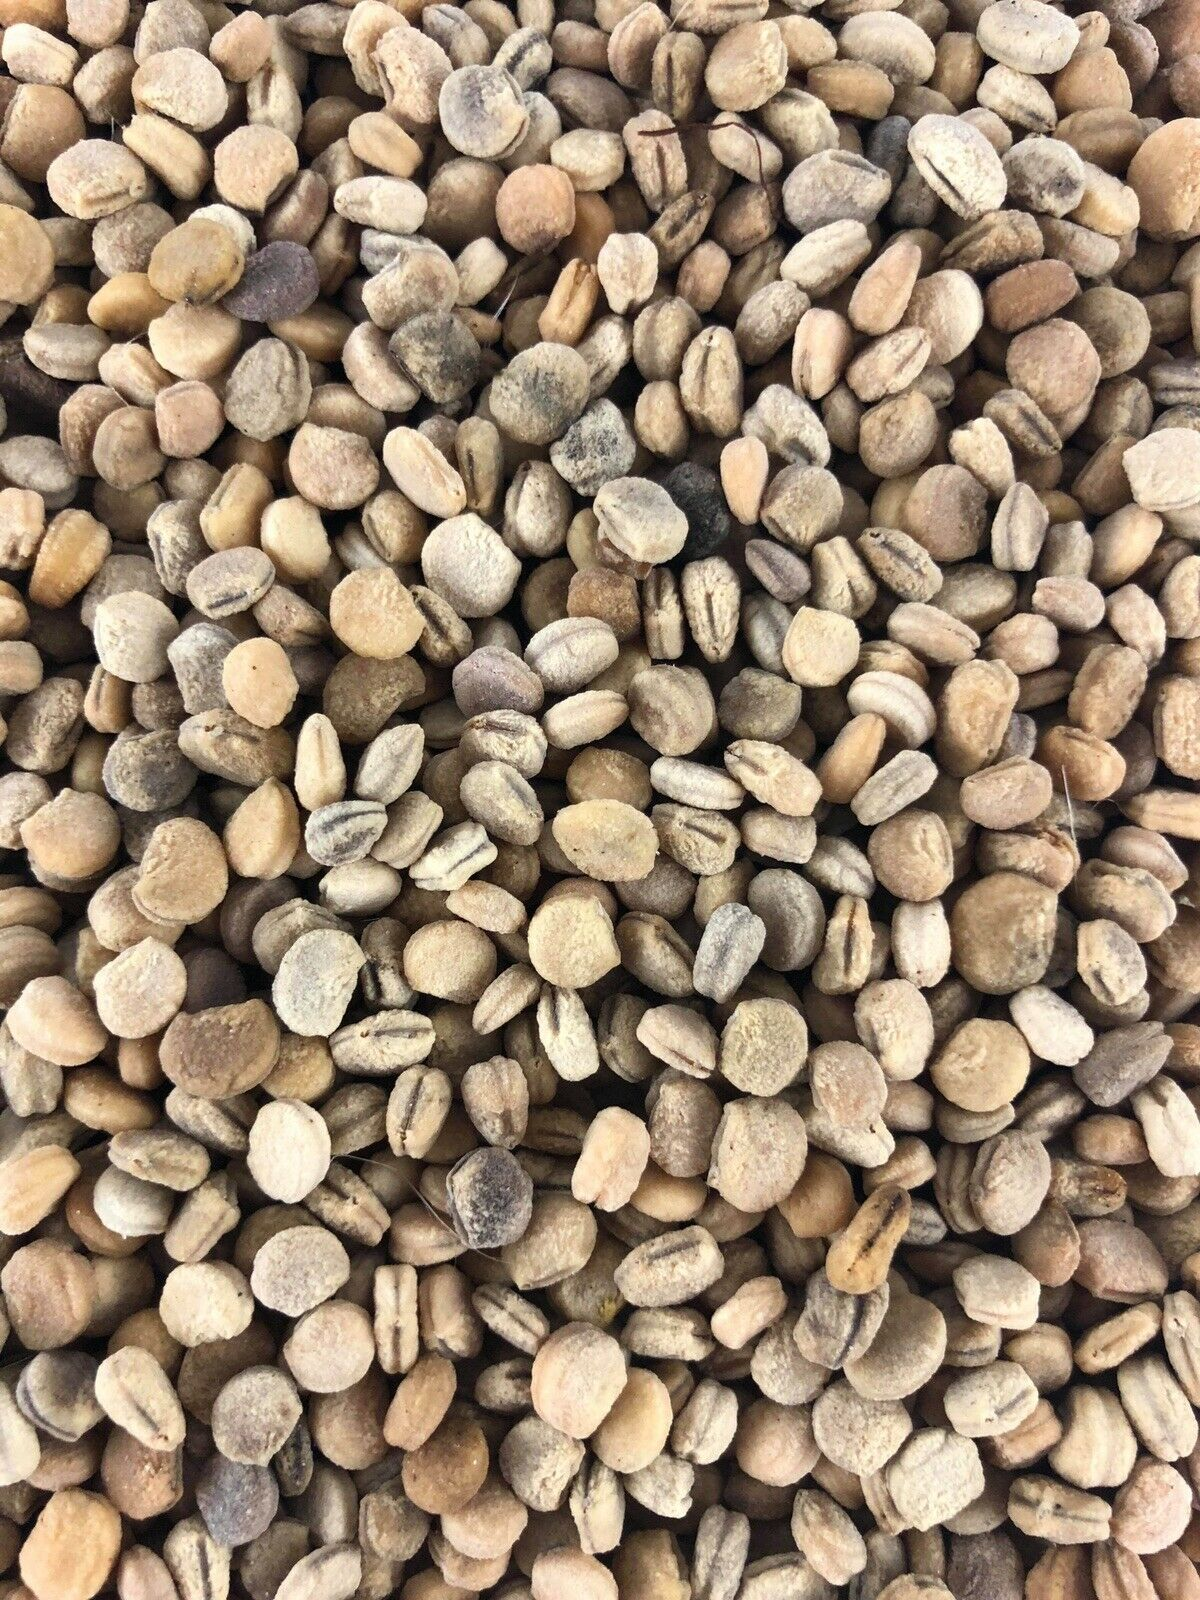 250+ American Ginseng Seeds Stratified -2020 Planting Now- Grow Your Own Roots